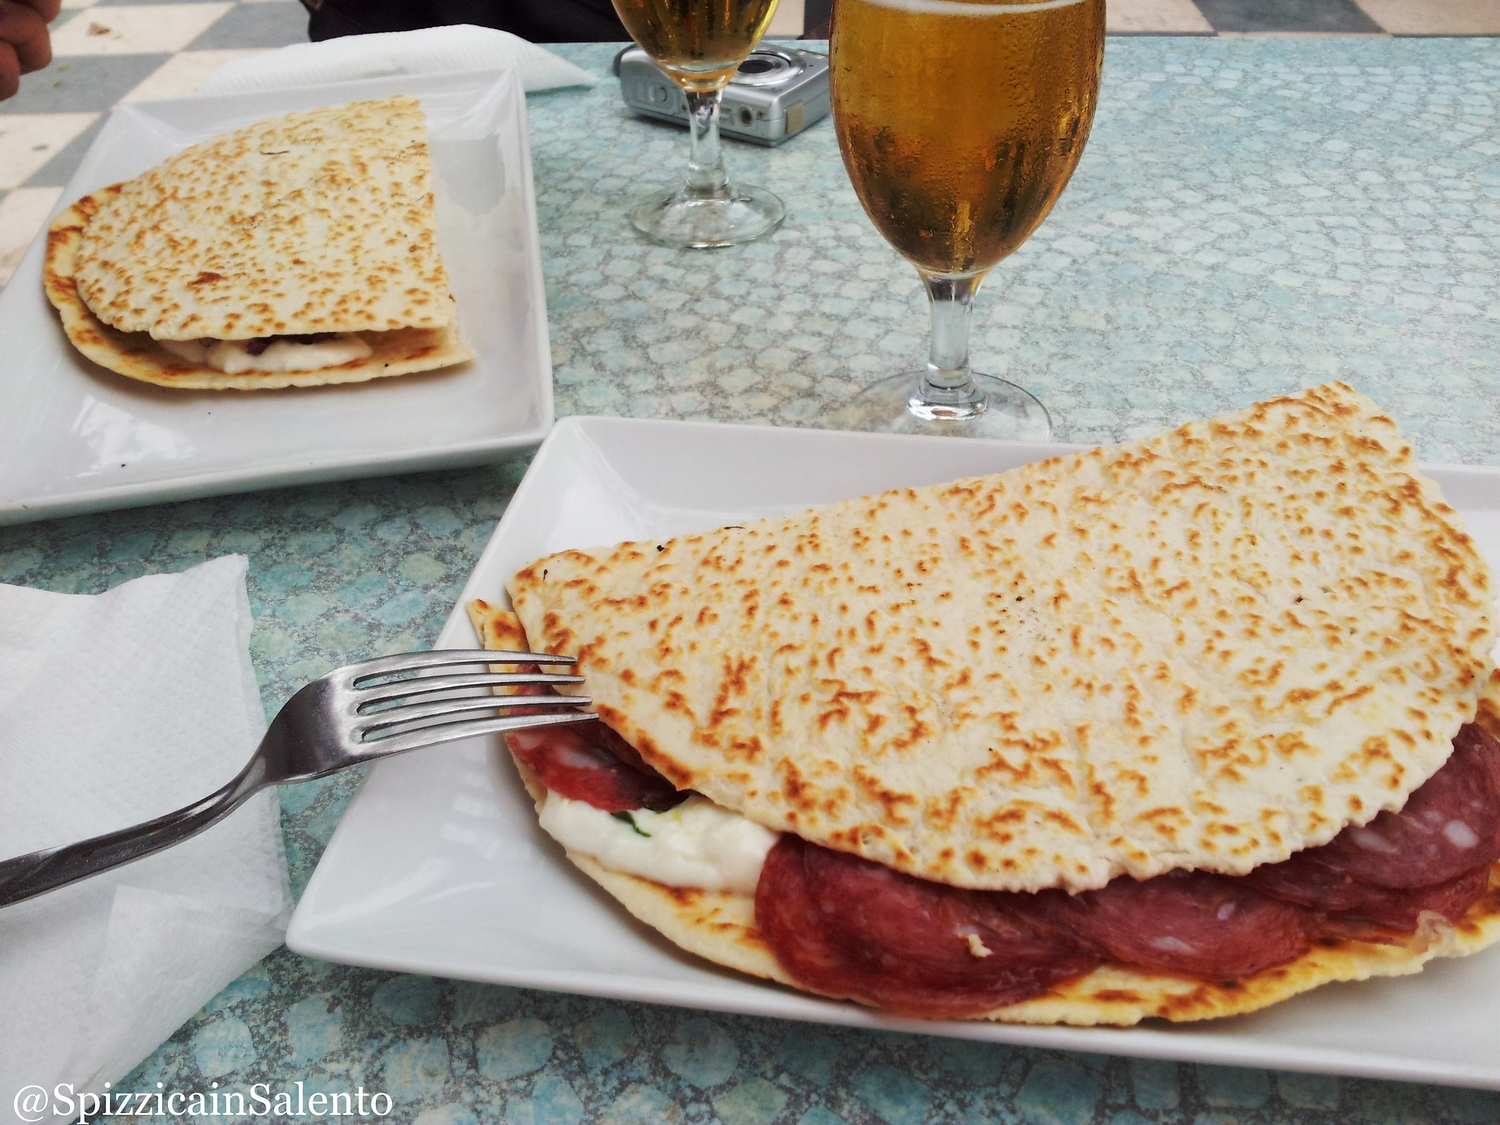 Piadina is a common food in Milan